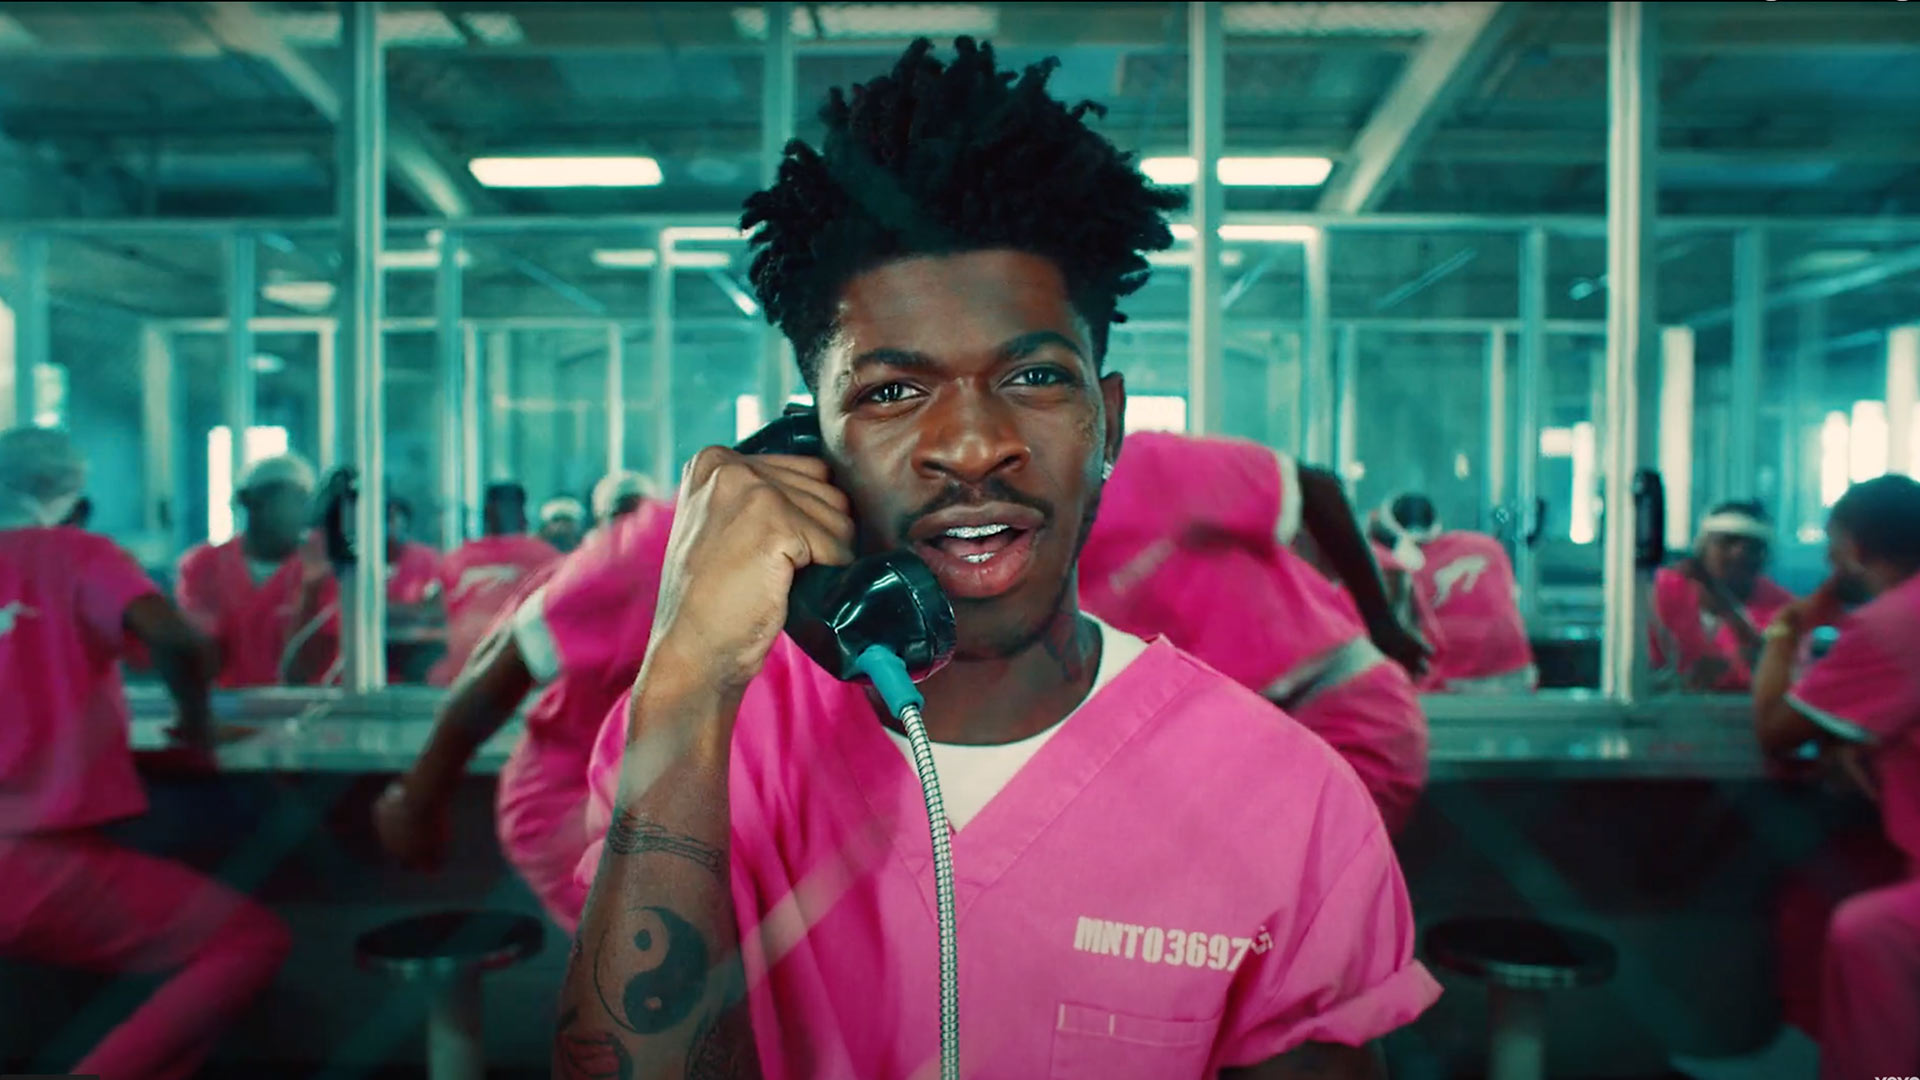 Lil Nas X Dances Nude in Music Video for New Song 'Industry Baby' Featuring Jack Harlow